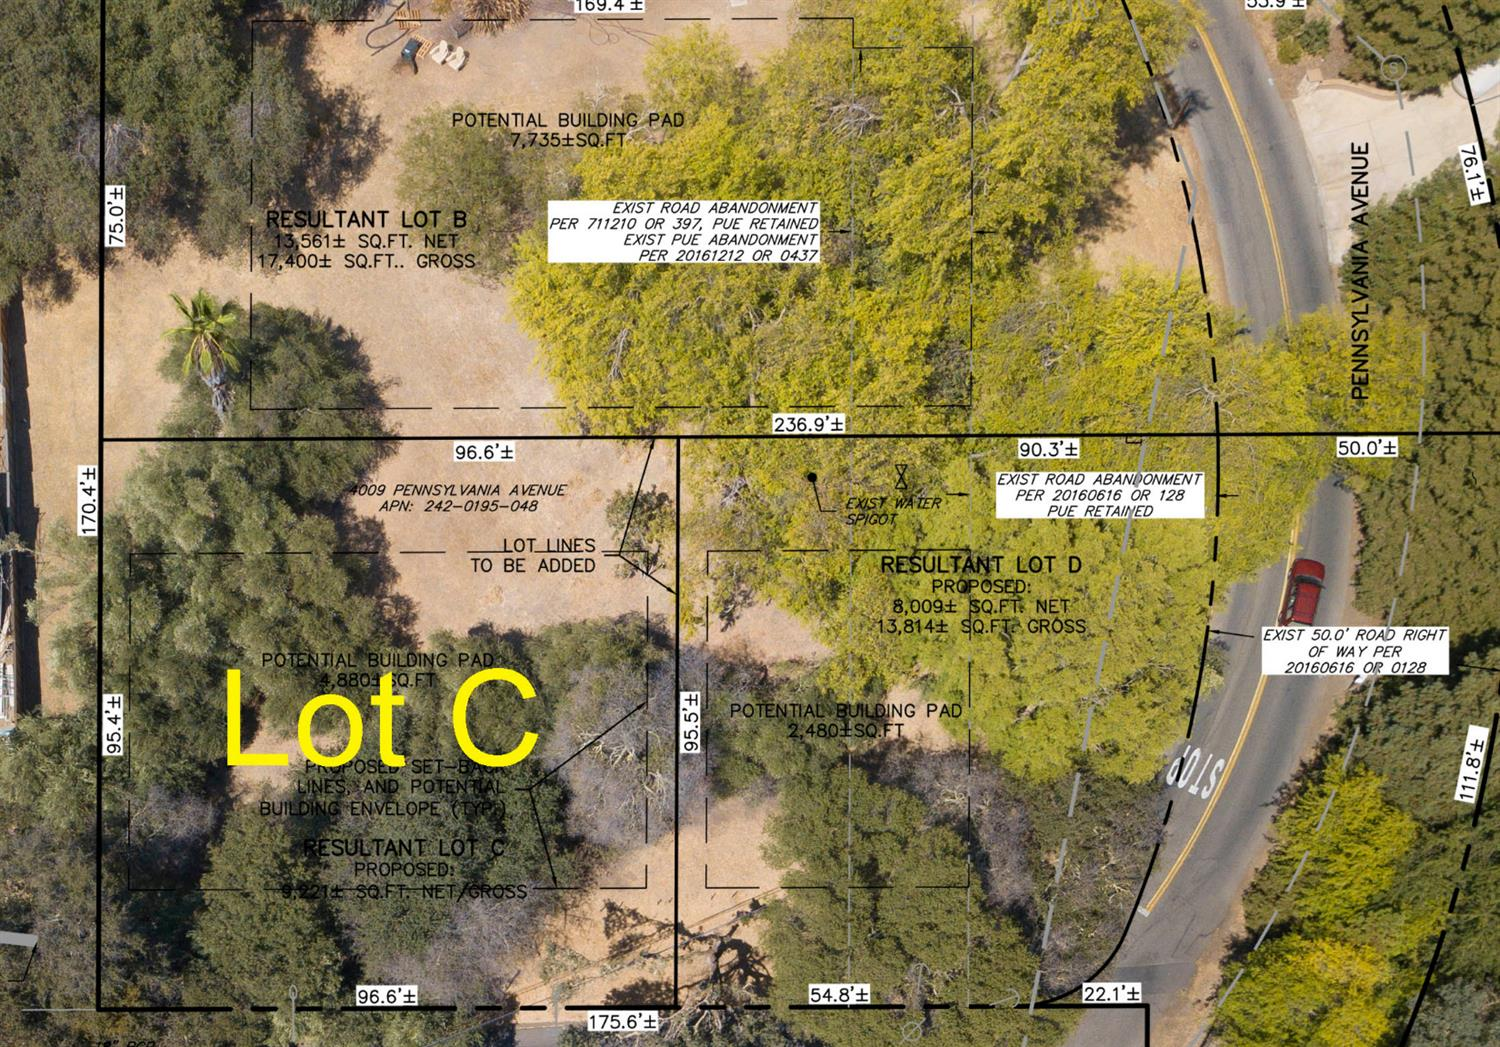 Here's your opportunity to own one of the last remaining residential lots right by the American River Trail access! This buildable site has a possible building pad (after set backs) of approximately 4,480 square feet! You'll appreciate the mature trees, privacy, location and life style of old Fair Oaks by the river! Come build your dream home today!